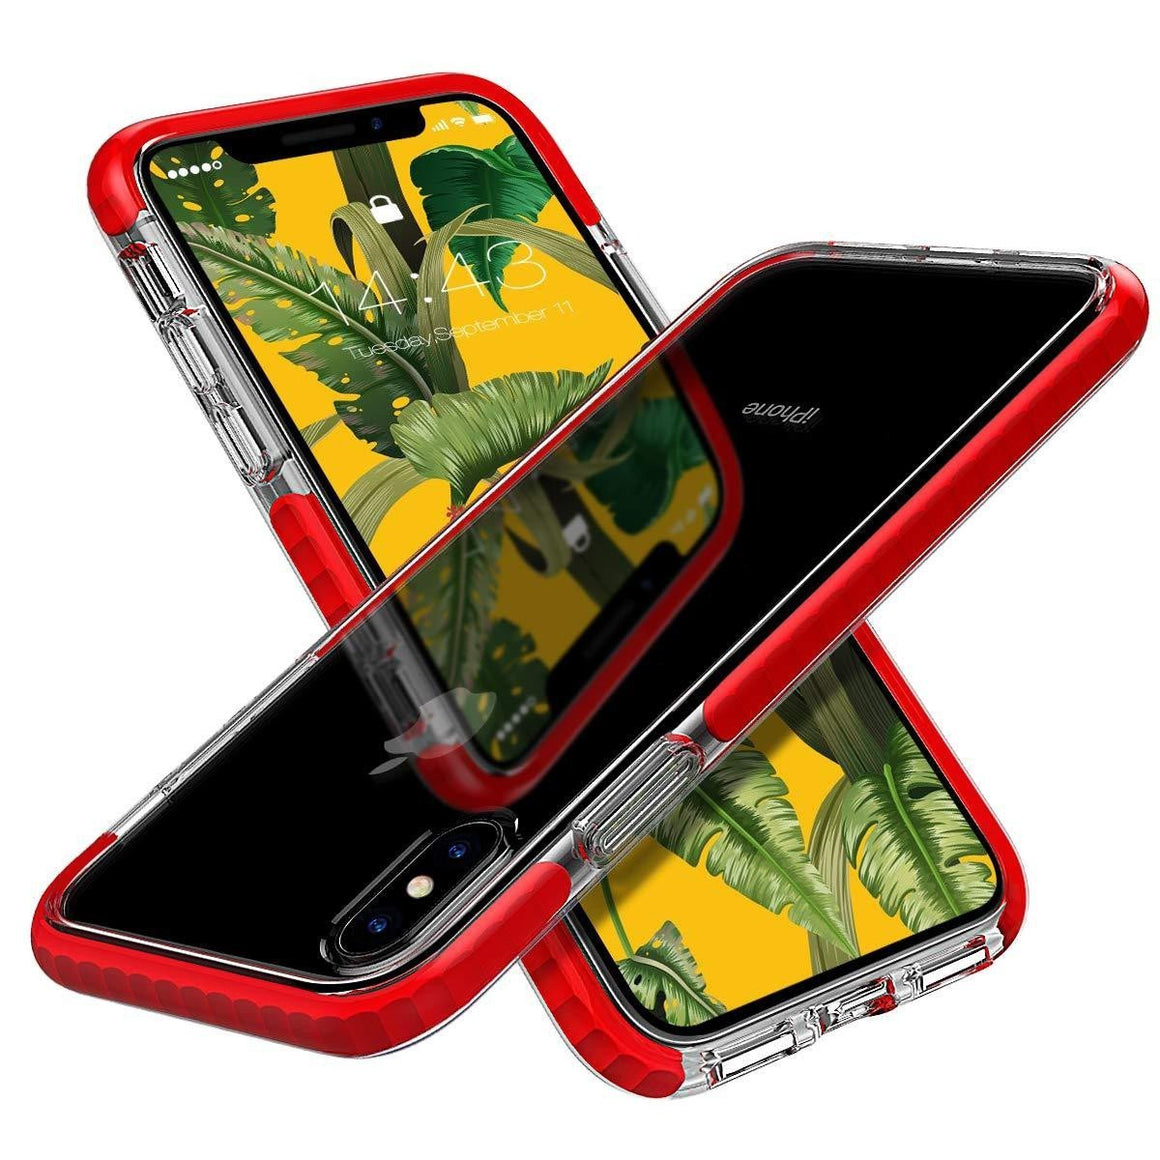 Anti-Scratches Shockproof Bumper iPhone Xs Max Case - Red - MPC - MyPhoneCase.com